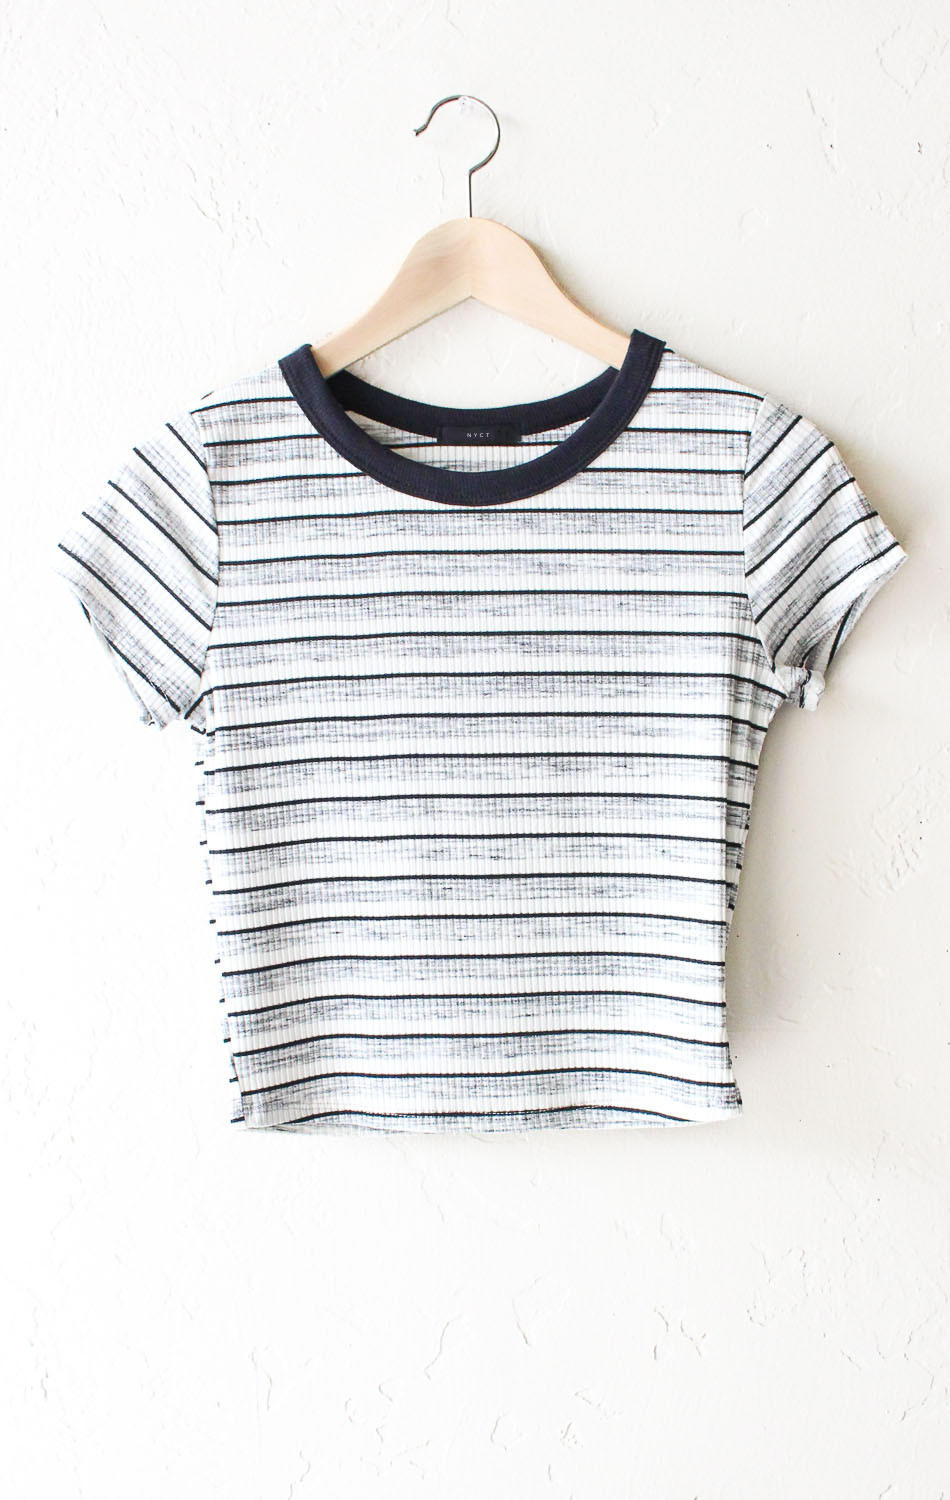 Image of Striped Crop Top - Black/White